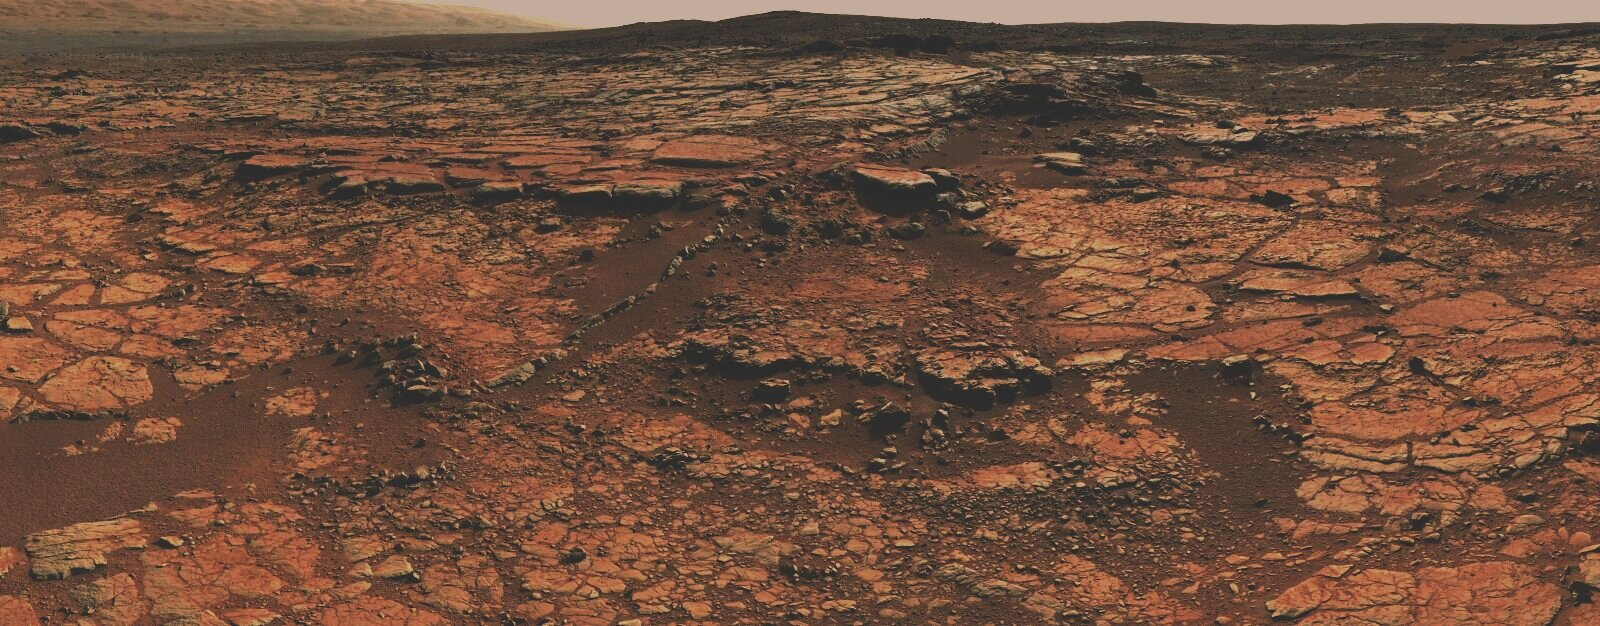 Expedition Mars -